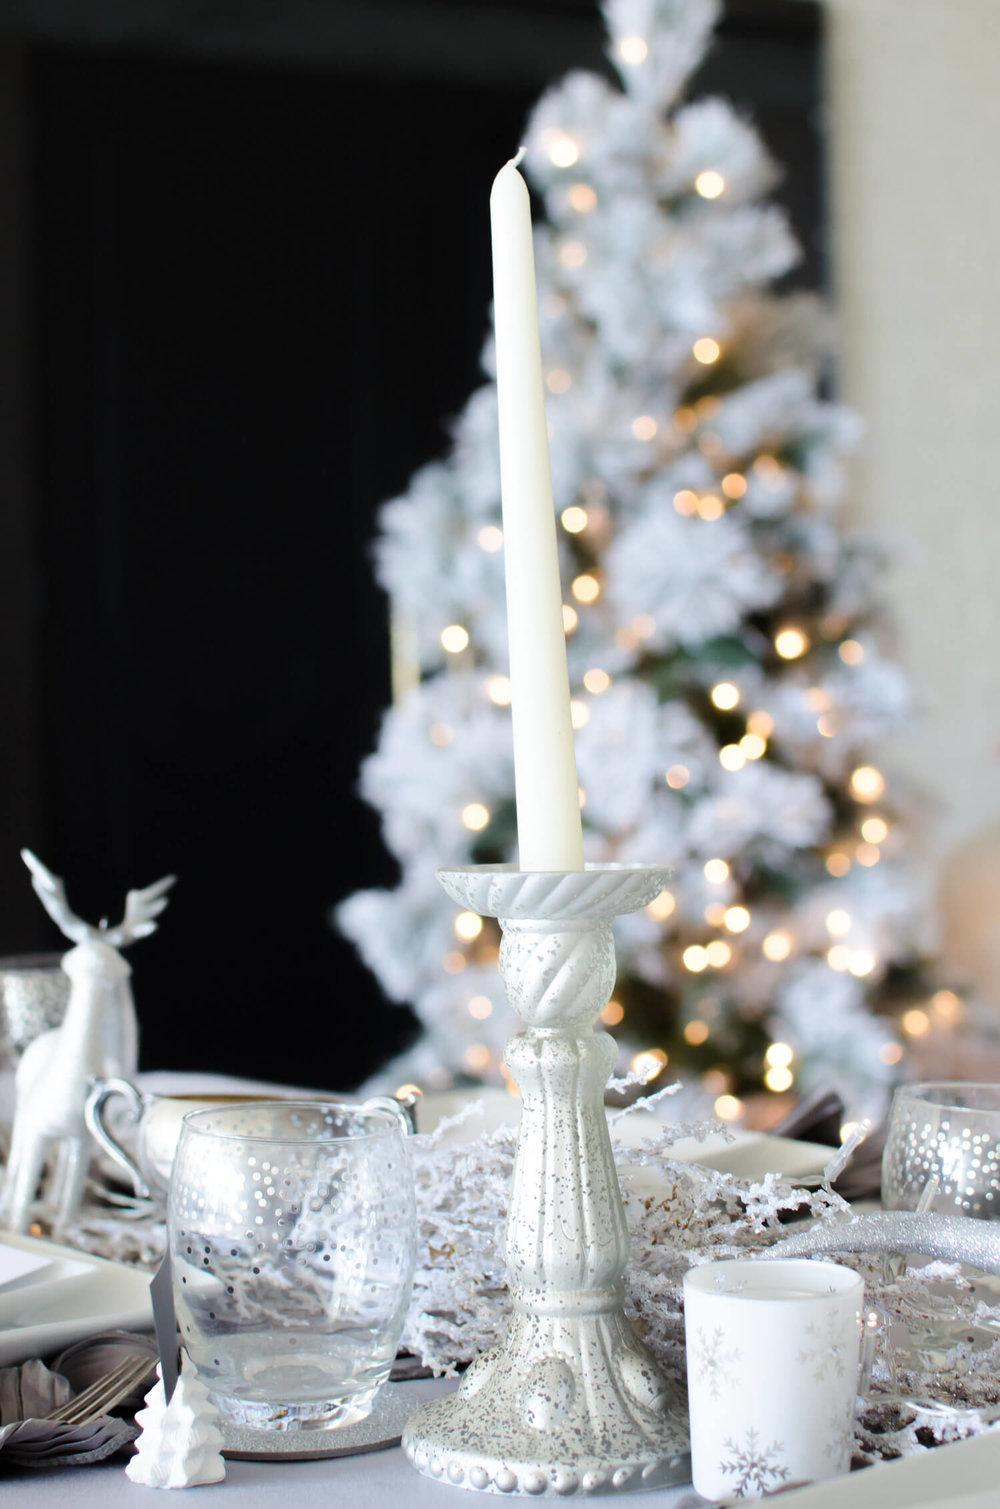 Pretty white and silver details for a winter party tablescape. See more ideas from this Winter Wonderland themed Bridal Shower Inspiration created by Mint Event Design www.minteventdesign.com #winterweddingideas #weddingwedding #bridalshowerideas #winterwonderland #tablescapes